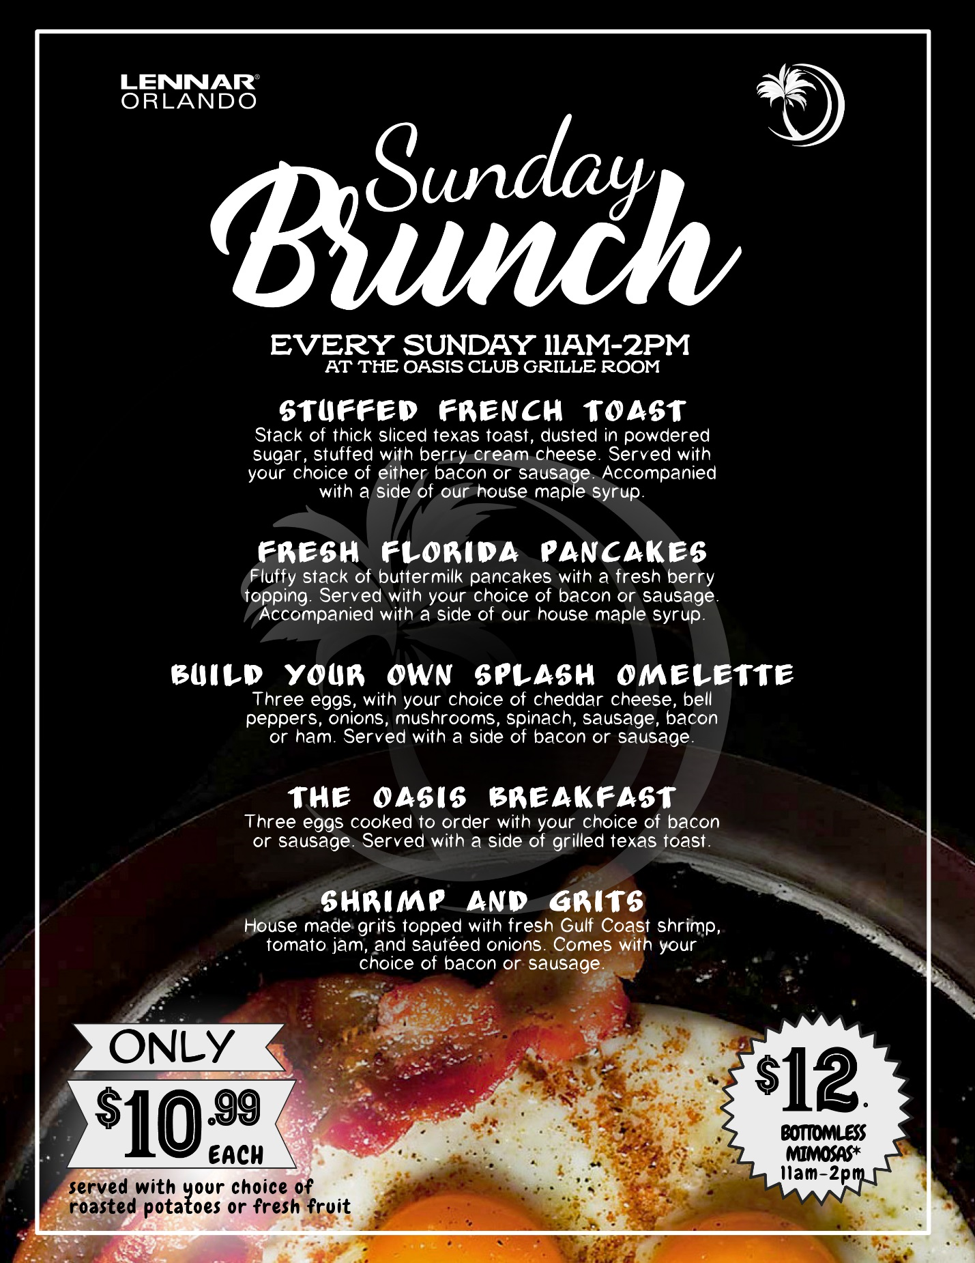 Sunday Brunch Every Sunday 11am-2pm at the Oasis Club Grille Room 10.99 Stack of thick sliced Texas Toast, stuffed with Berry Cream Cheese, then dusted in Powder Sugar. Served with your choice of Bacon or Sausage and a side of Maple Syrup Fresh Florida Pancakes 10.99 Fluffy stack of Buttermilk Pancakes with a Fresh Berry Topping. Served with your choice of Bacon or Sausage and a side of Maple Syrup Build Your Own Splash Omelet 10.99 Three Eggs, Cheddar Jack Cheese, choice of Bell Peppers, Onions, Mushrooms, Spinach, Sausage, Bacon or Ham. Served with a side of Bacon or Sausage and Roasted Potatoes or Fresh Fruit The Oasis Breakfast 10.99 Three Eggs cooked to order, with Bacon or Sausage and choice of Roasted Potatoes, or Fresh Fruit. served with grilled Texas Toast Shrimp and Grits 10.99 House made Grits topped with fresh Gulf Coast Shrimp, Tomato Jam, and Sautéed Onions Only $10.99 each and served with your choice of roasted potatoes or fresh fruit. $12 Bottomless mimosas 11am-2pm